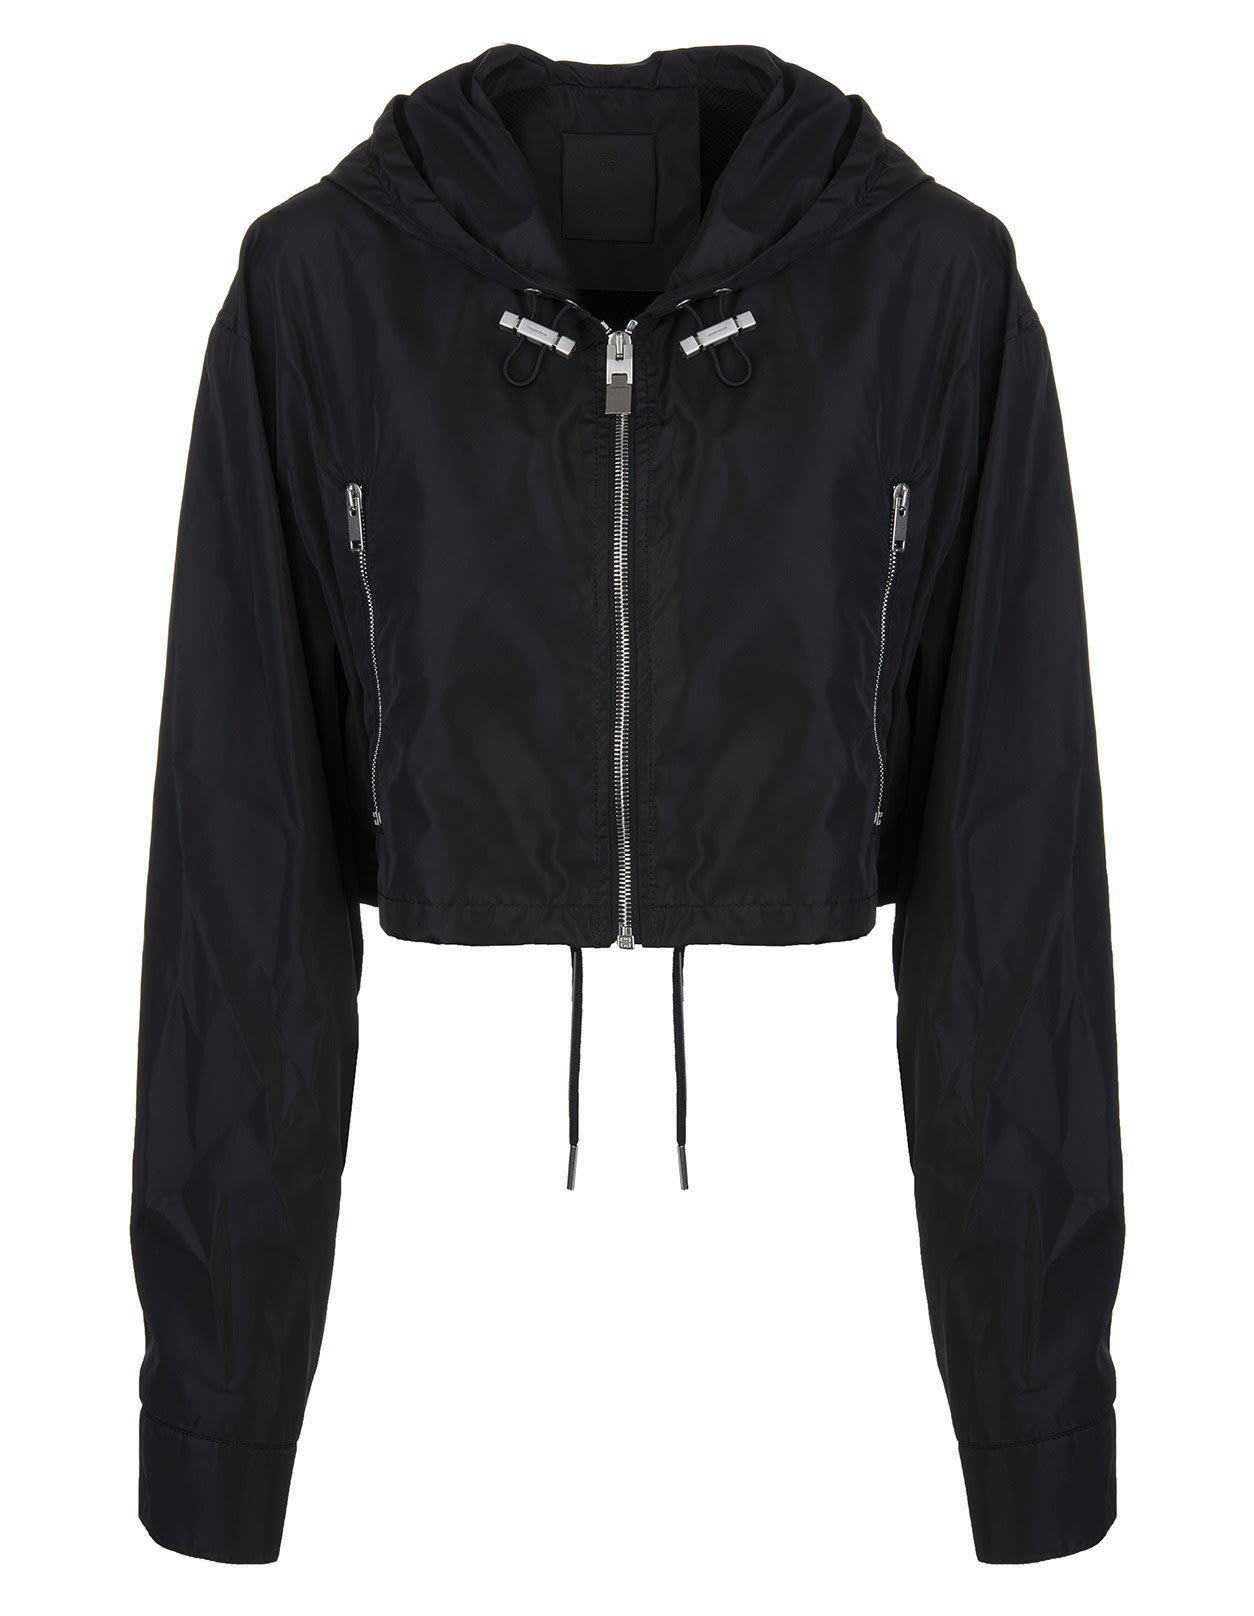 Givenchy Jackets WOMAN BLACK SHORT WINDBREAKER WITH LOGO ON THE BACK